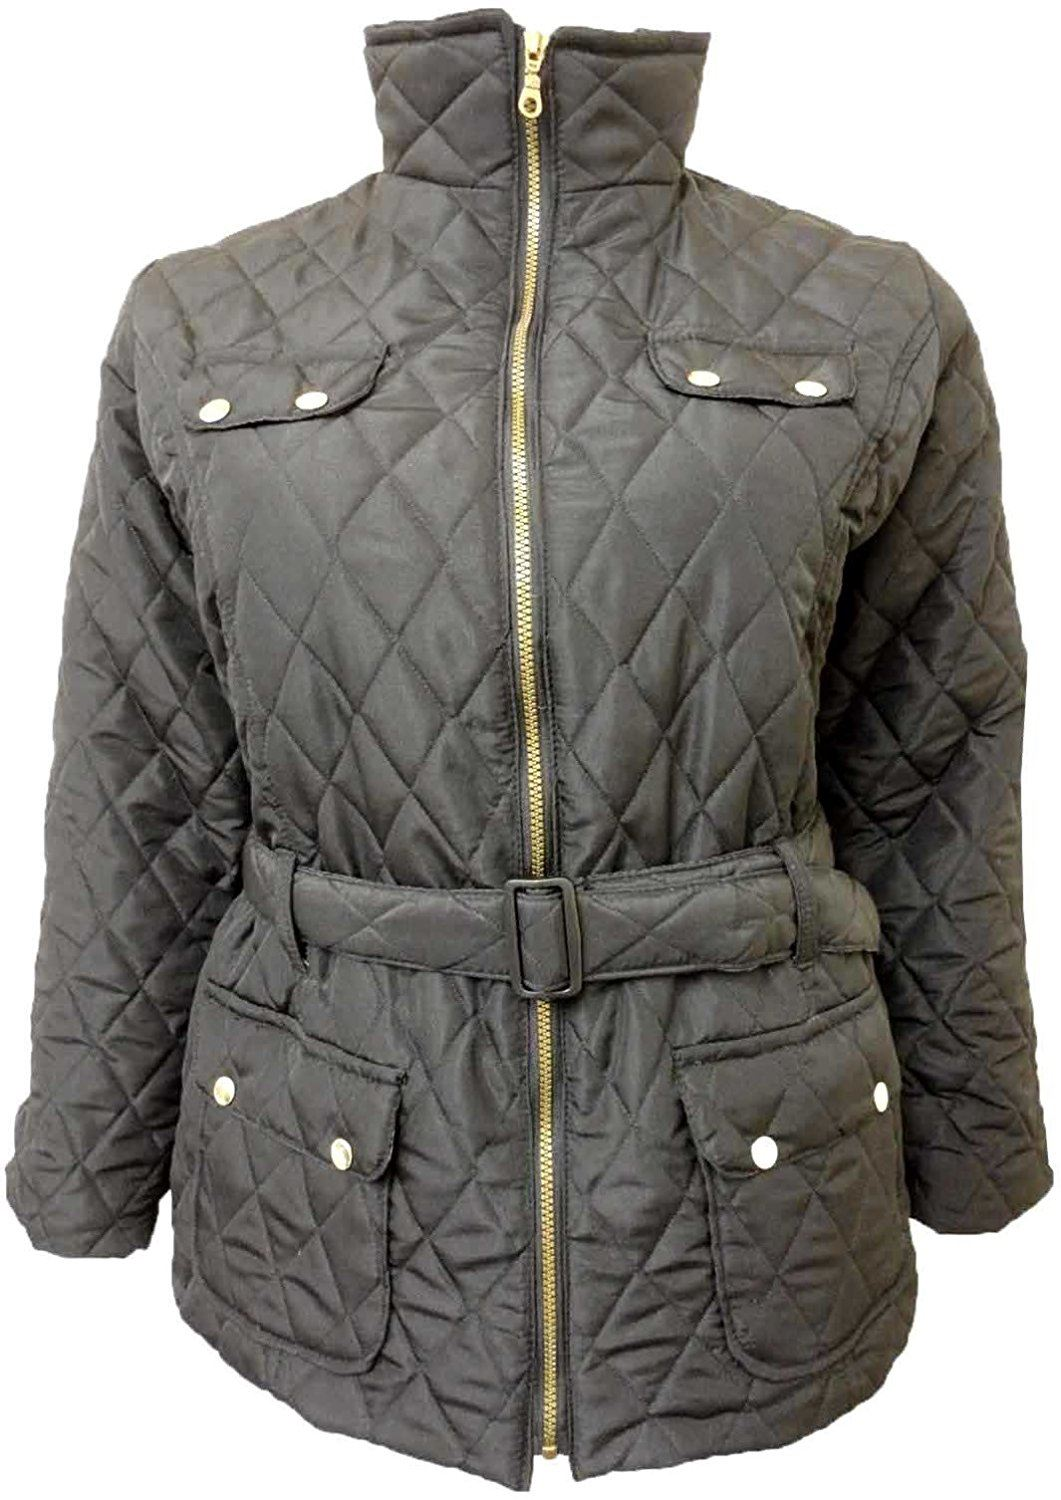 Free shipping and returns on quilted jackets for women at mediacrucialxa.cf Shop moto jackets, goose down jackets and more. Check out our entire collection.